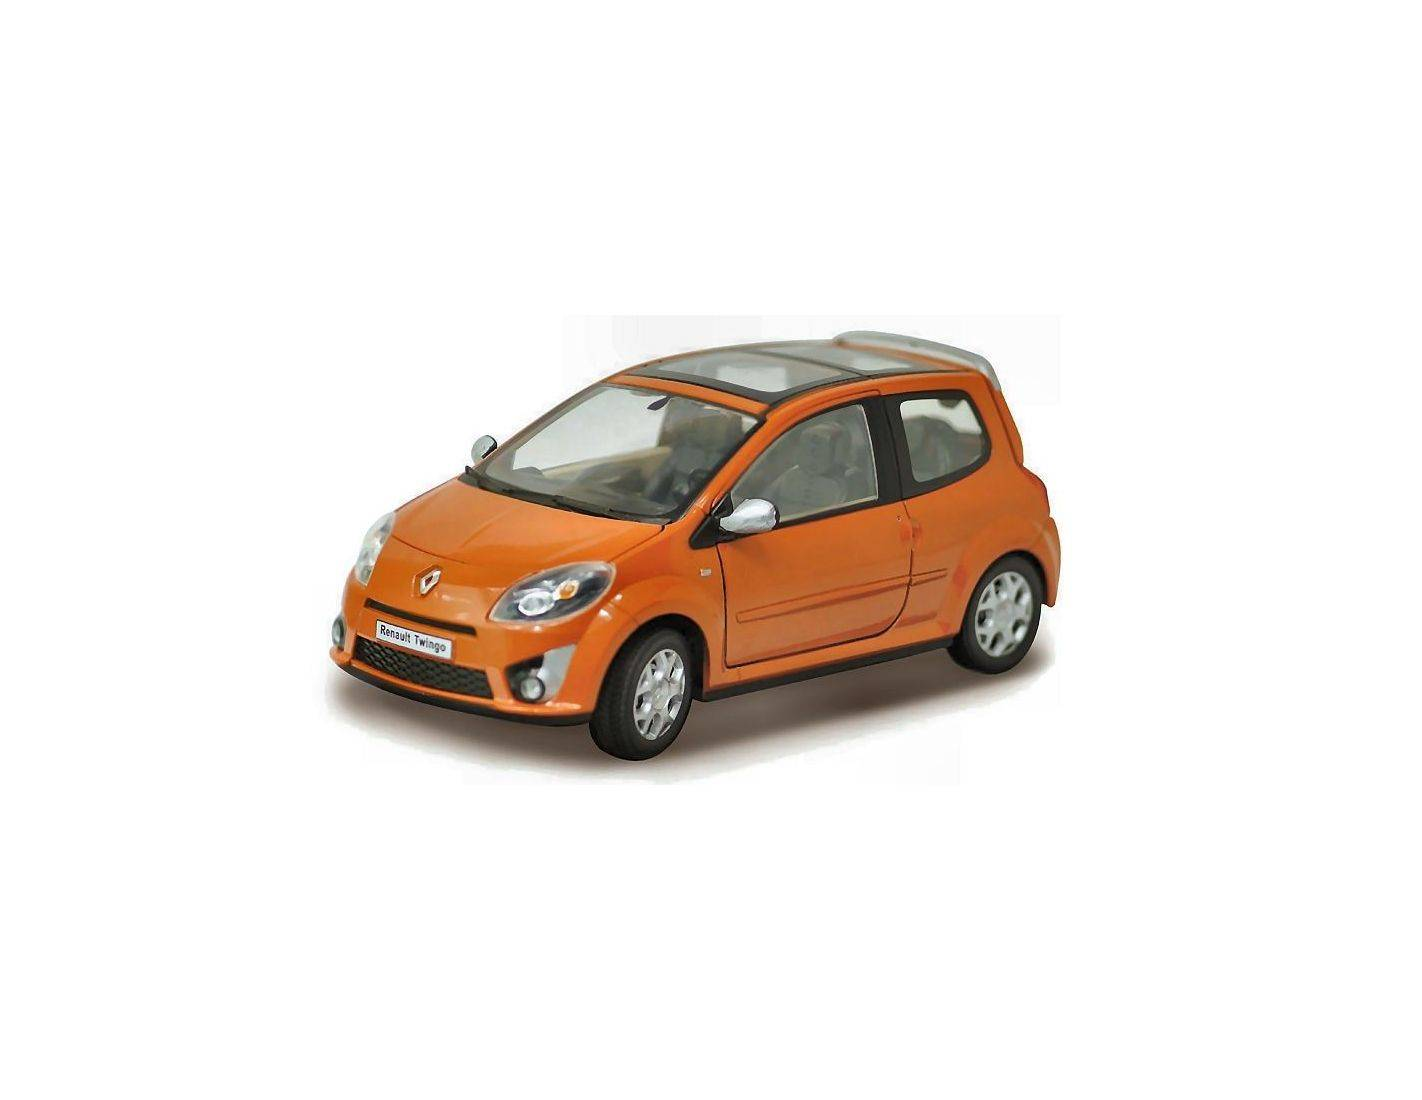 cararama motorama ca9349 renault twingo ii 2007 orange 1 24 modellino. Black Bedroom Furniture Sets. Home Design Ideas